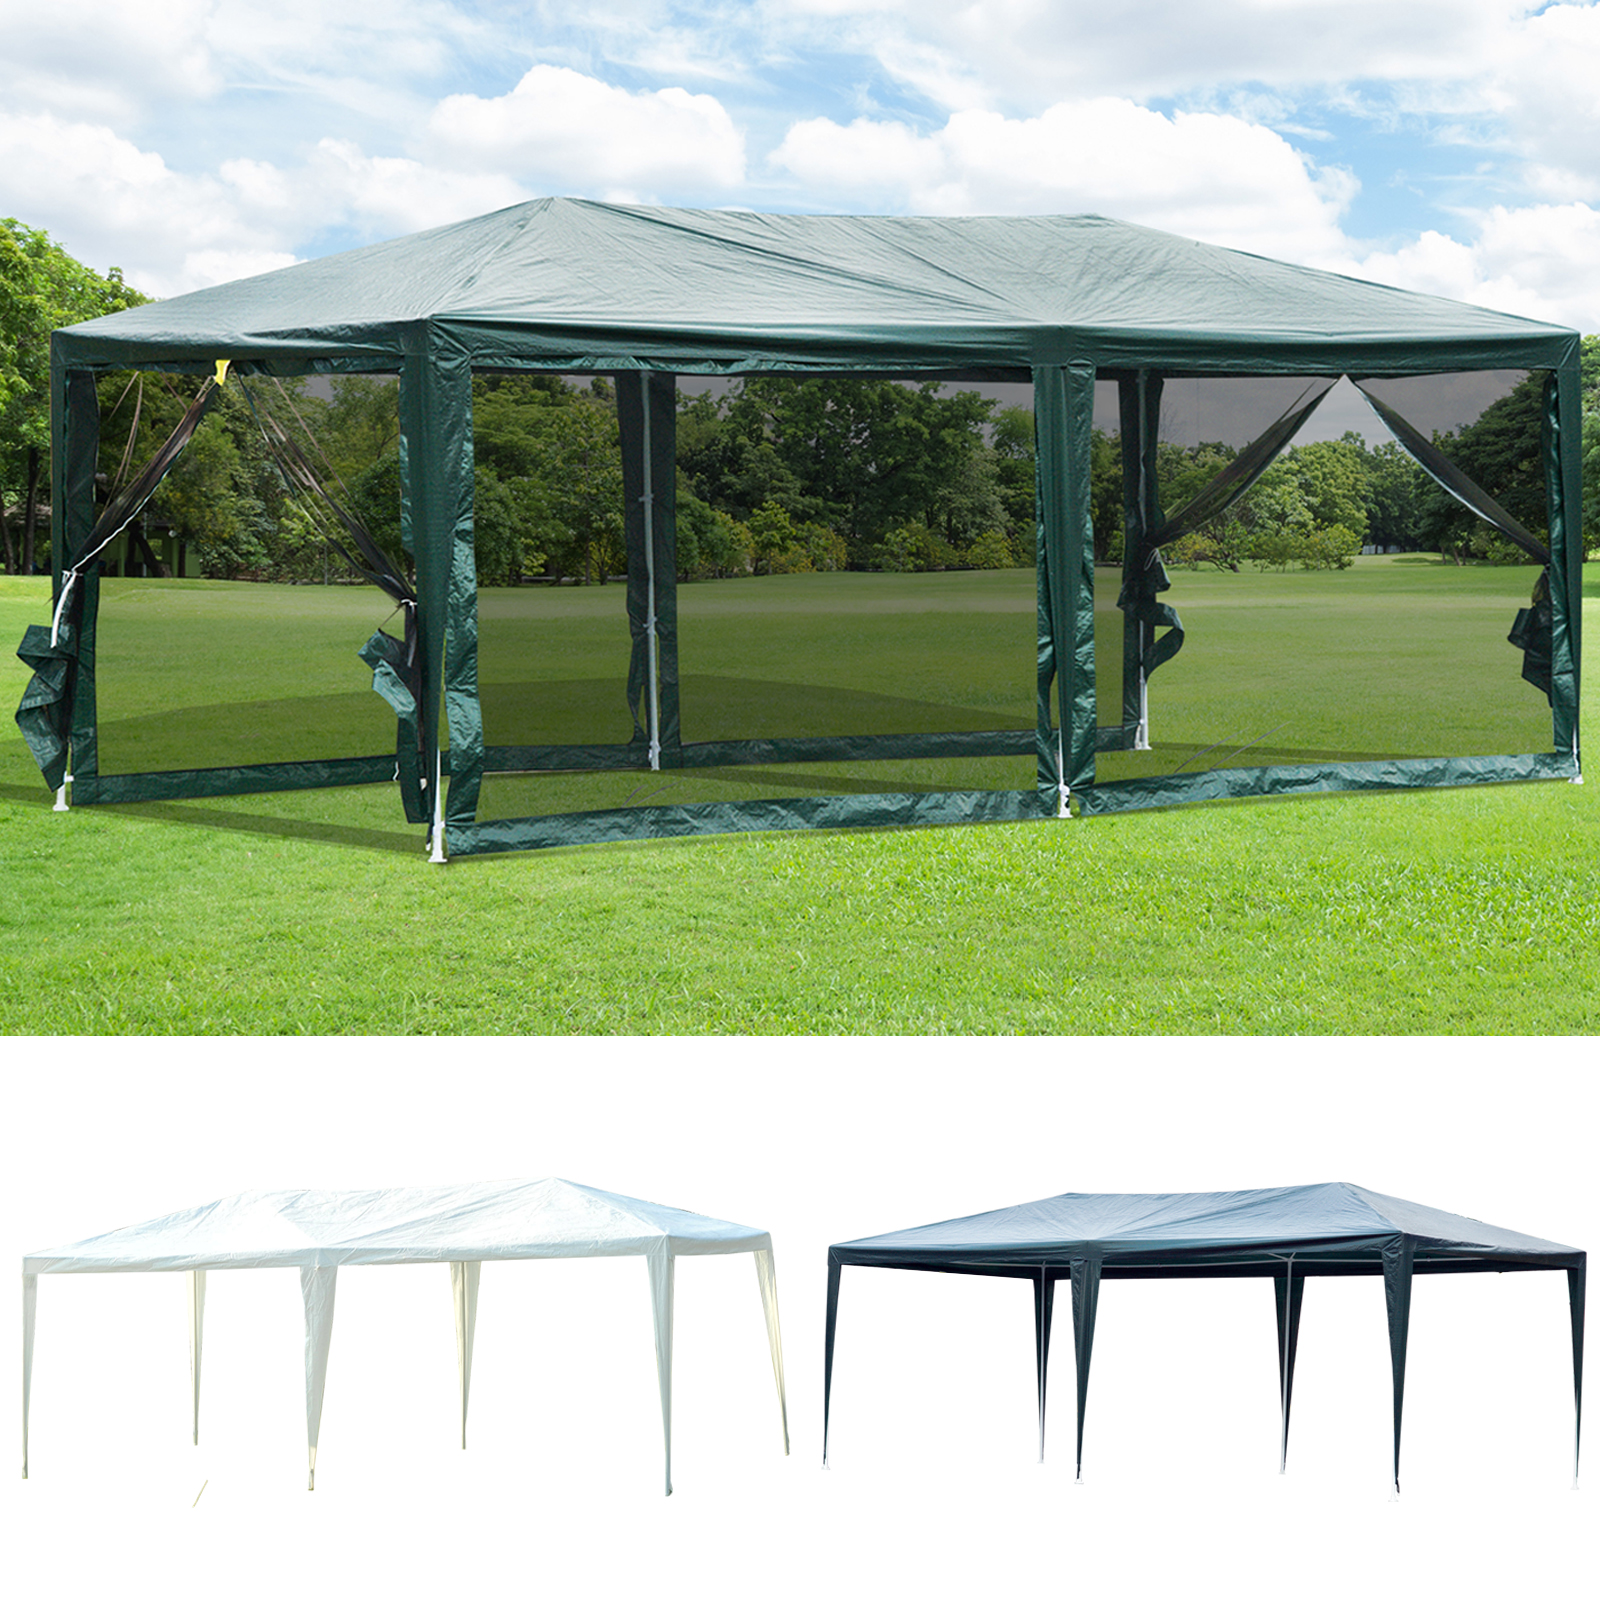 Details About 10u0027 X 20u0027 Gazebo Canopy Cover Tent Patio Party W/ Removable  Mesh Side Walls